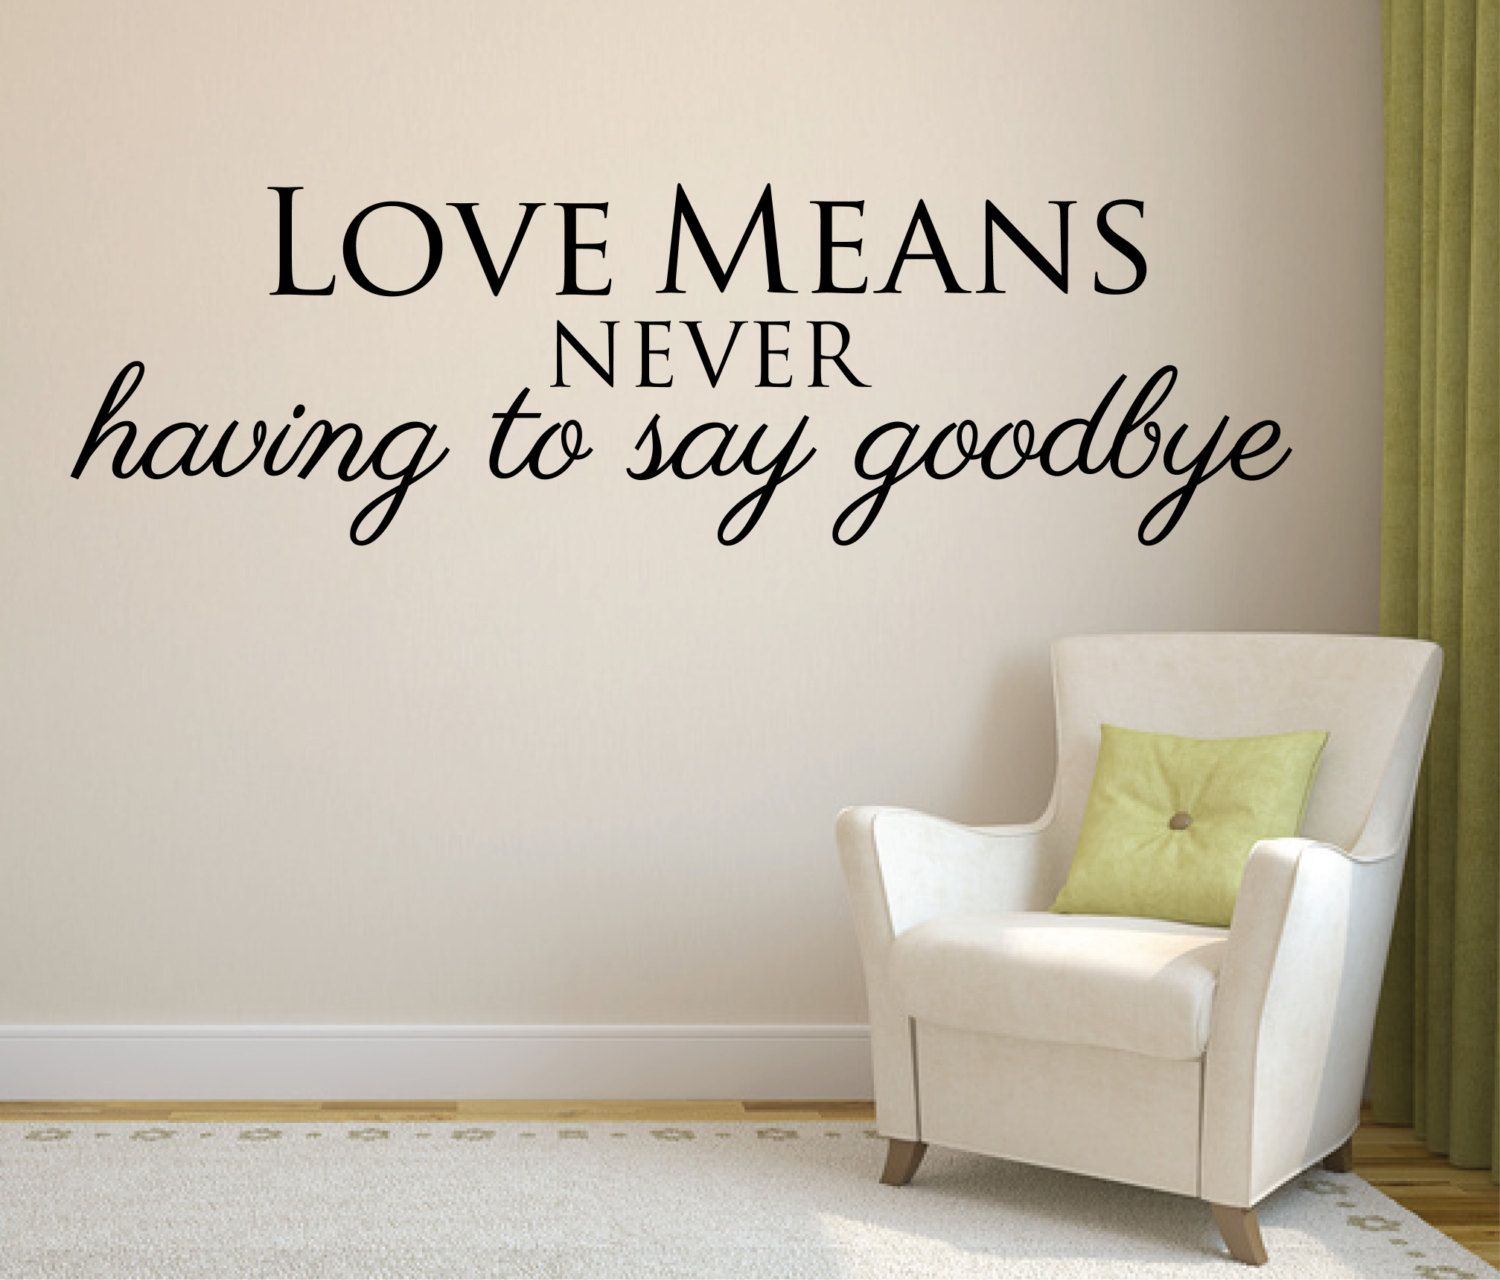 wall decal love quote love means never having to say goodbye wall decal love quote love means never having to say goodbye cute wall decor love wall decal art sticker wall graphic saying